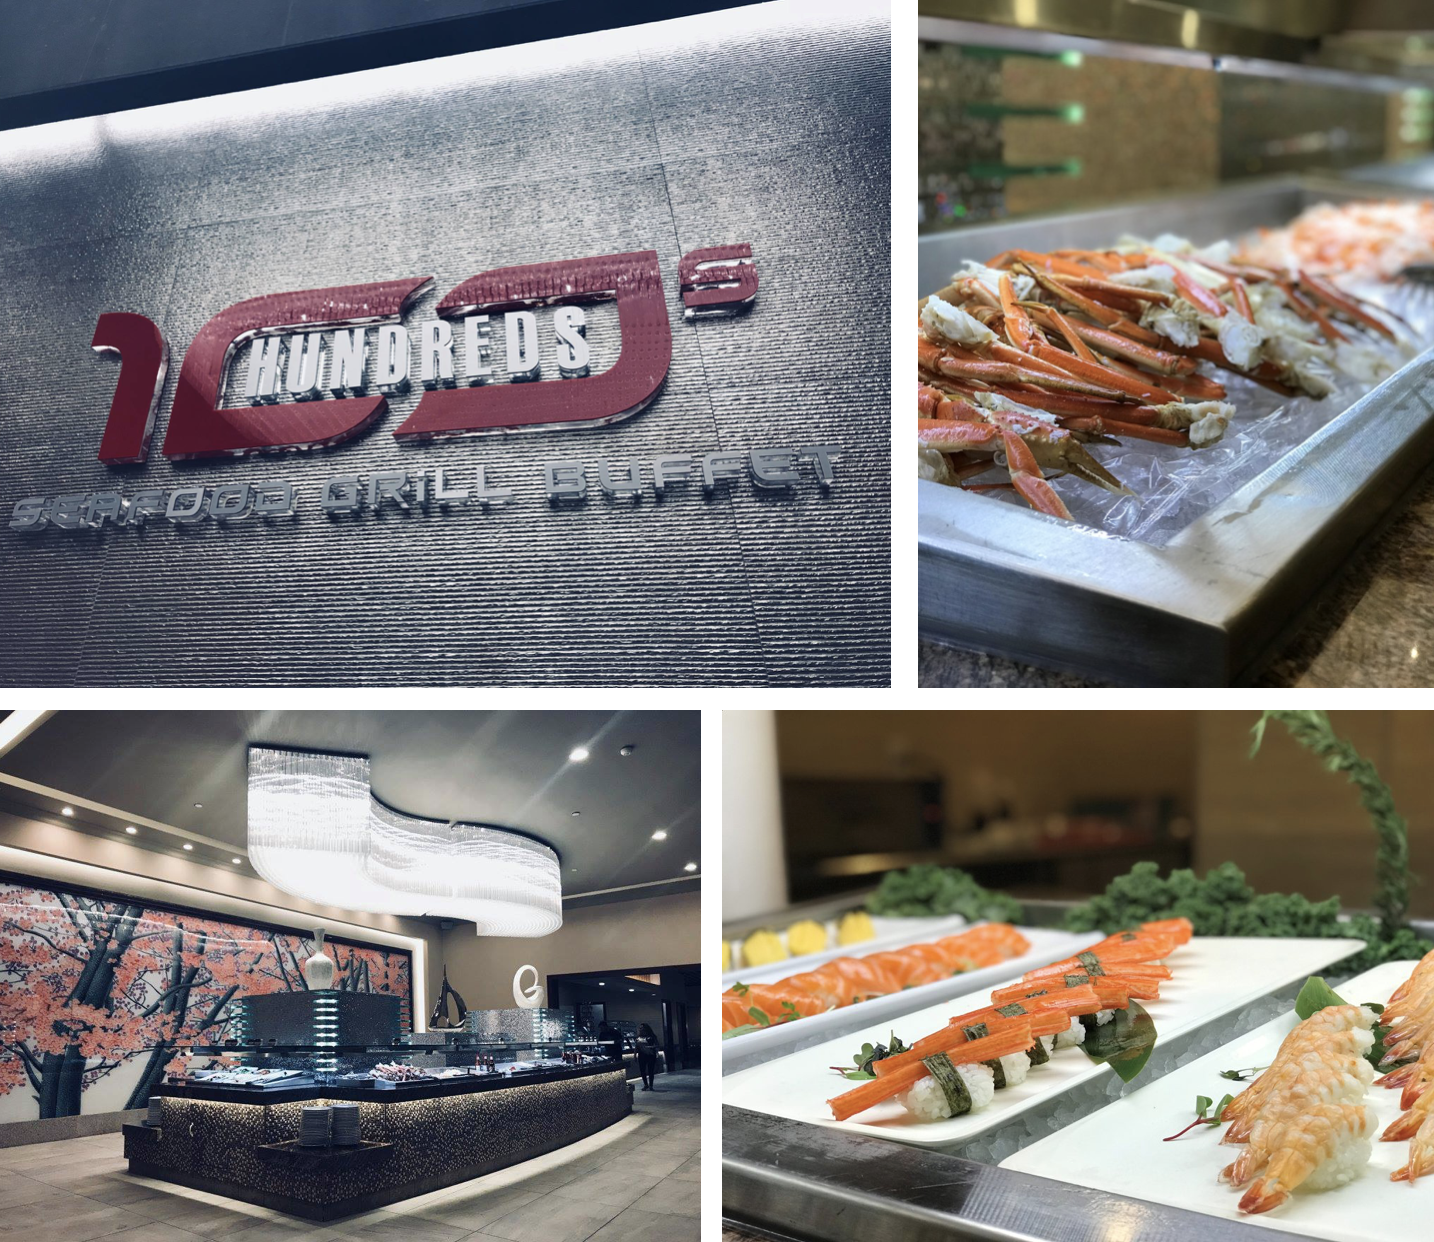 All You Can Eat Seafood Buffet Opens In Mission Valley With Images Seafood Buffet Grilled Seafood Seafood